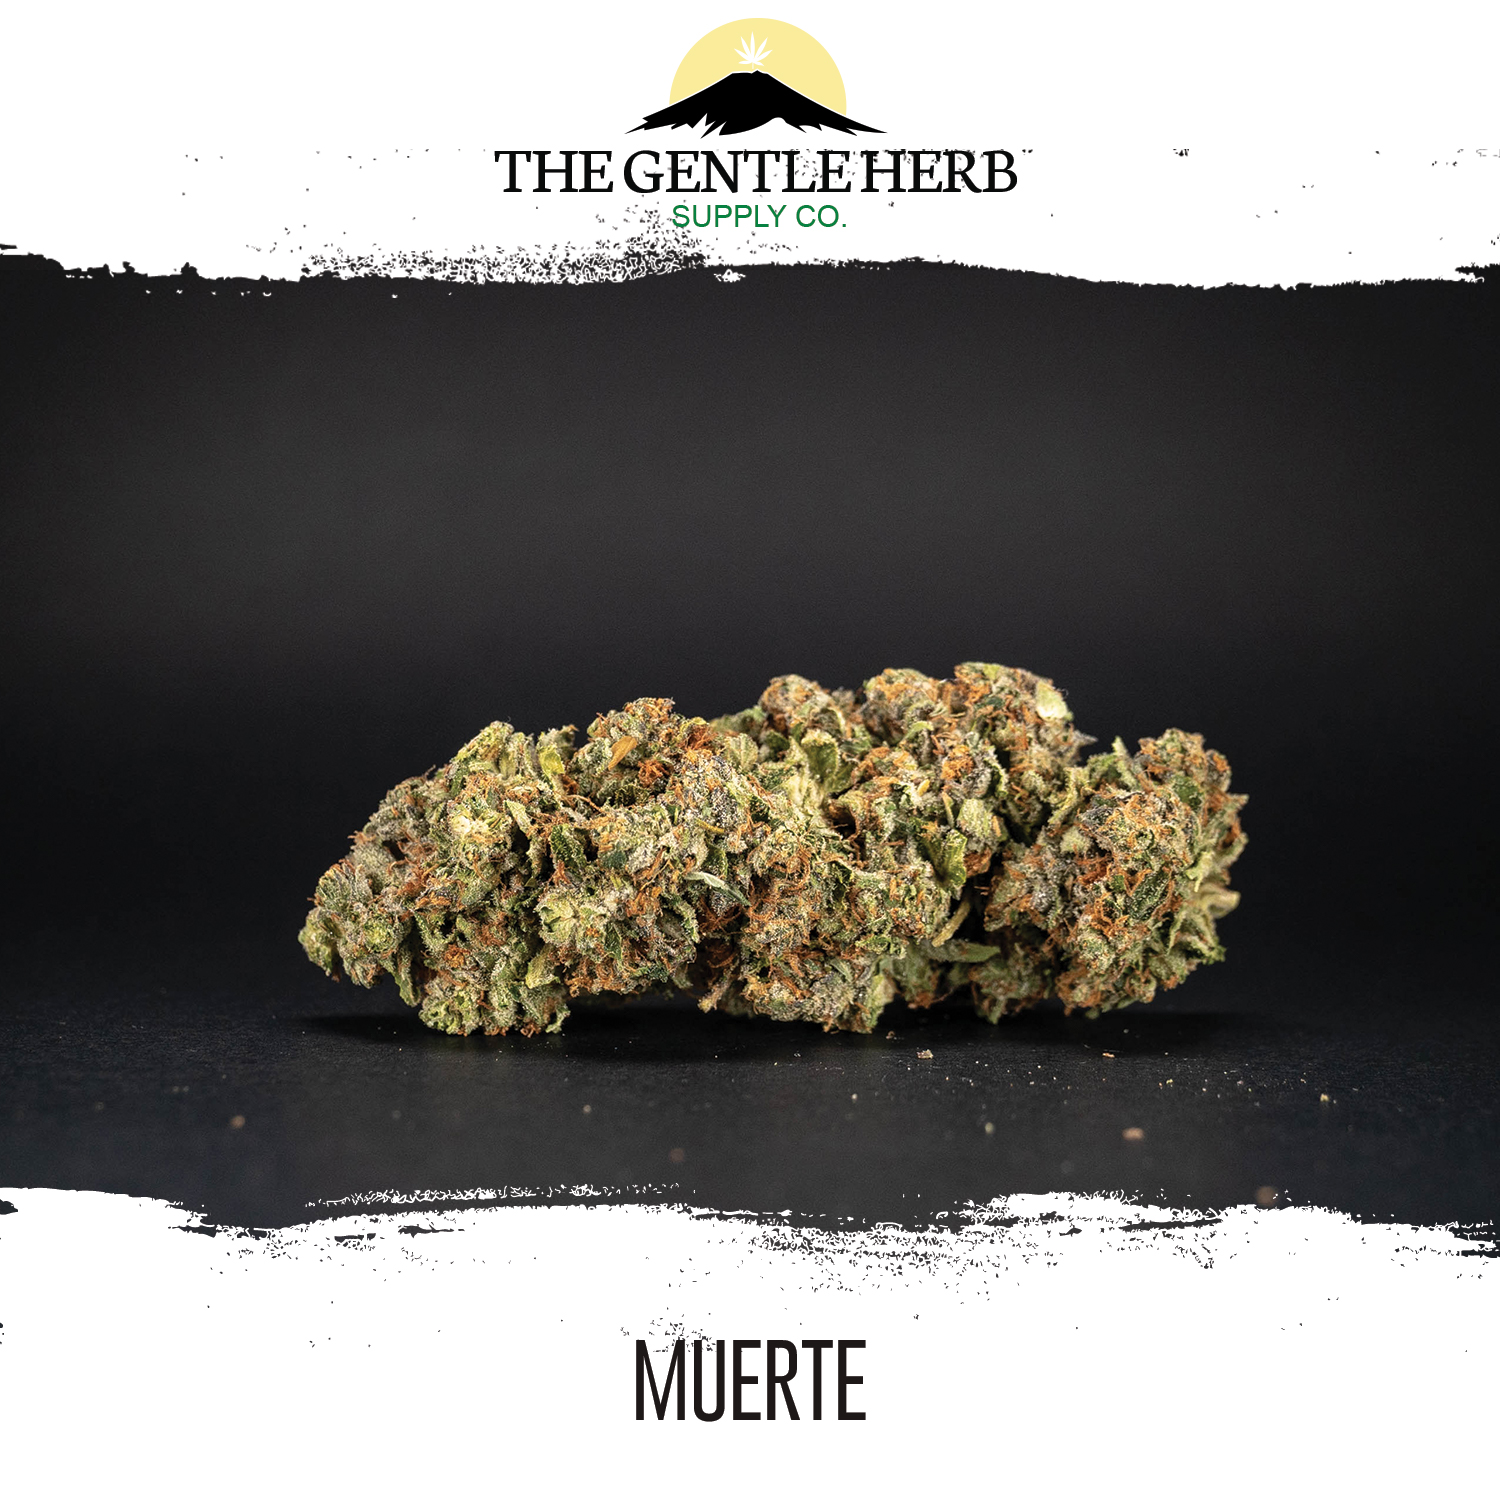 Muerte by The Gentle Herb - Image © 2018 The Gentle Herb. All Rights Reserved.